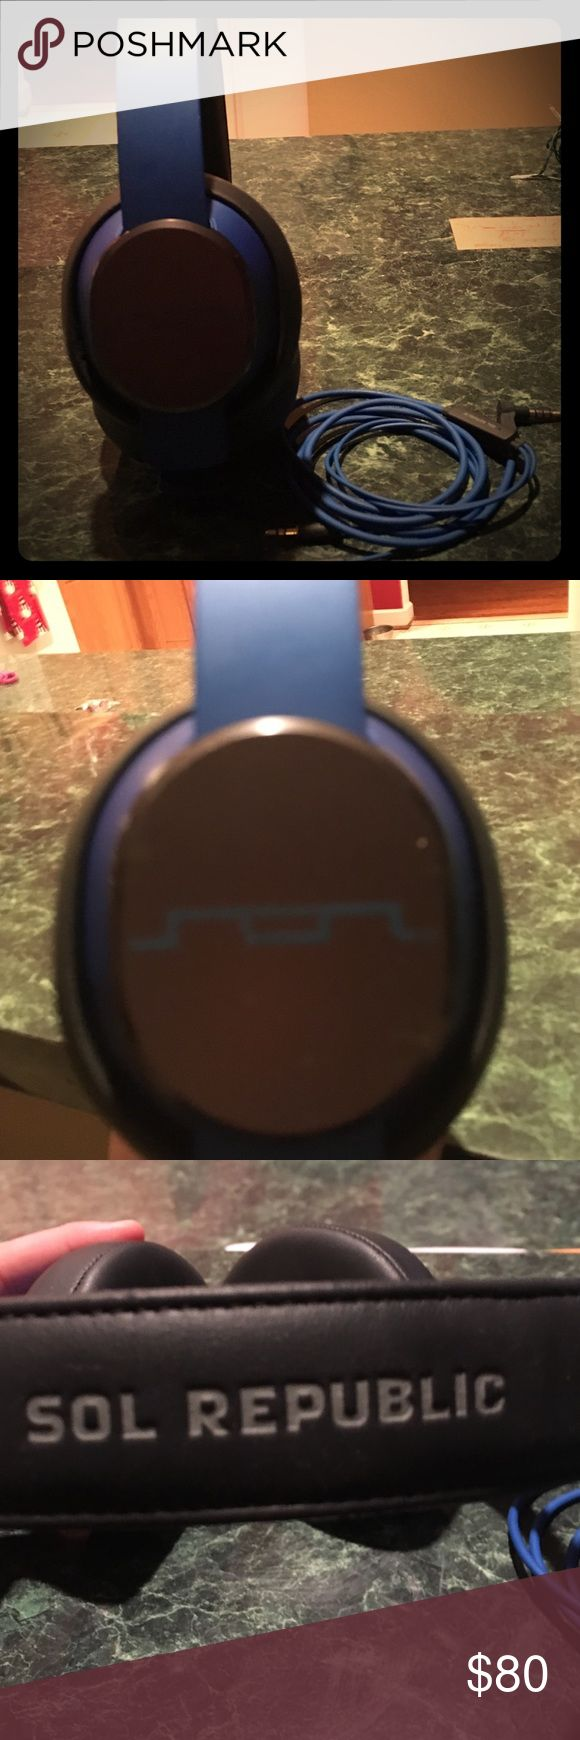 Sol republic x3 high quality headphones Back and blue. Very loud, great bass, barely used, good Christmas present sol republic Other